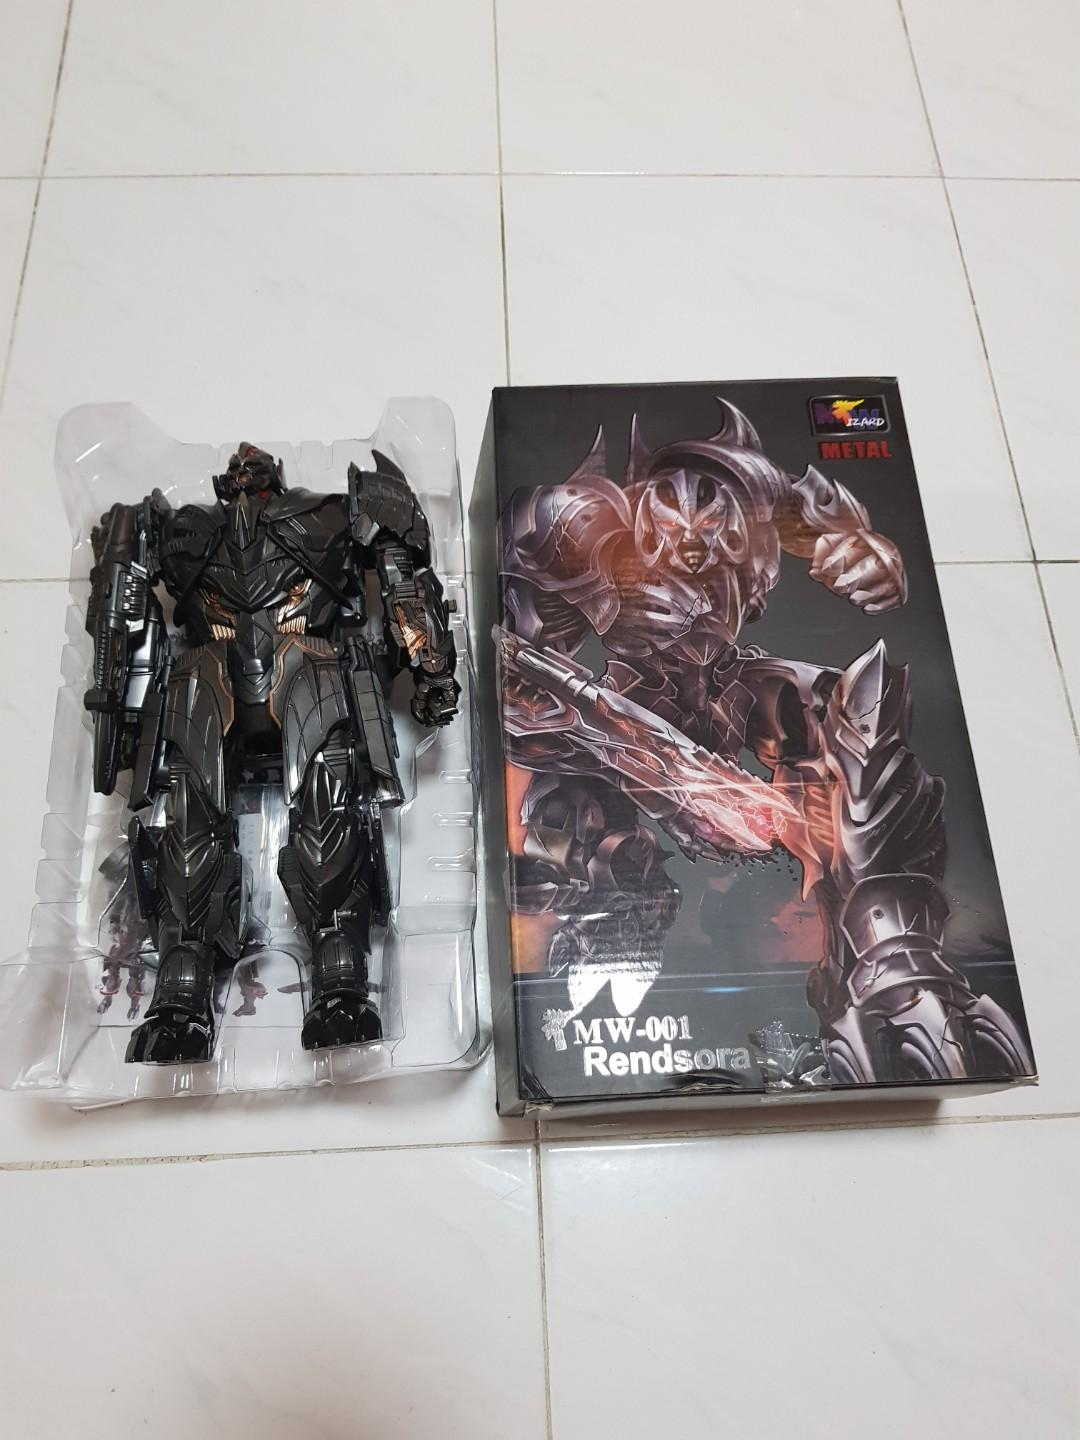 TRANSFORMERS Wizard MW-001 Rendsora Megatron  Action Figure The Last Knight